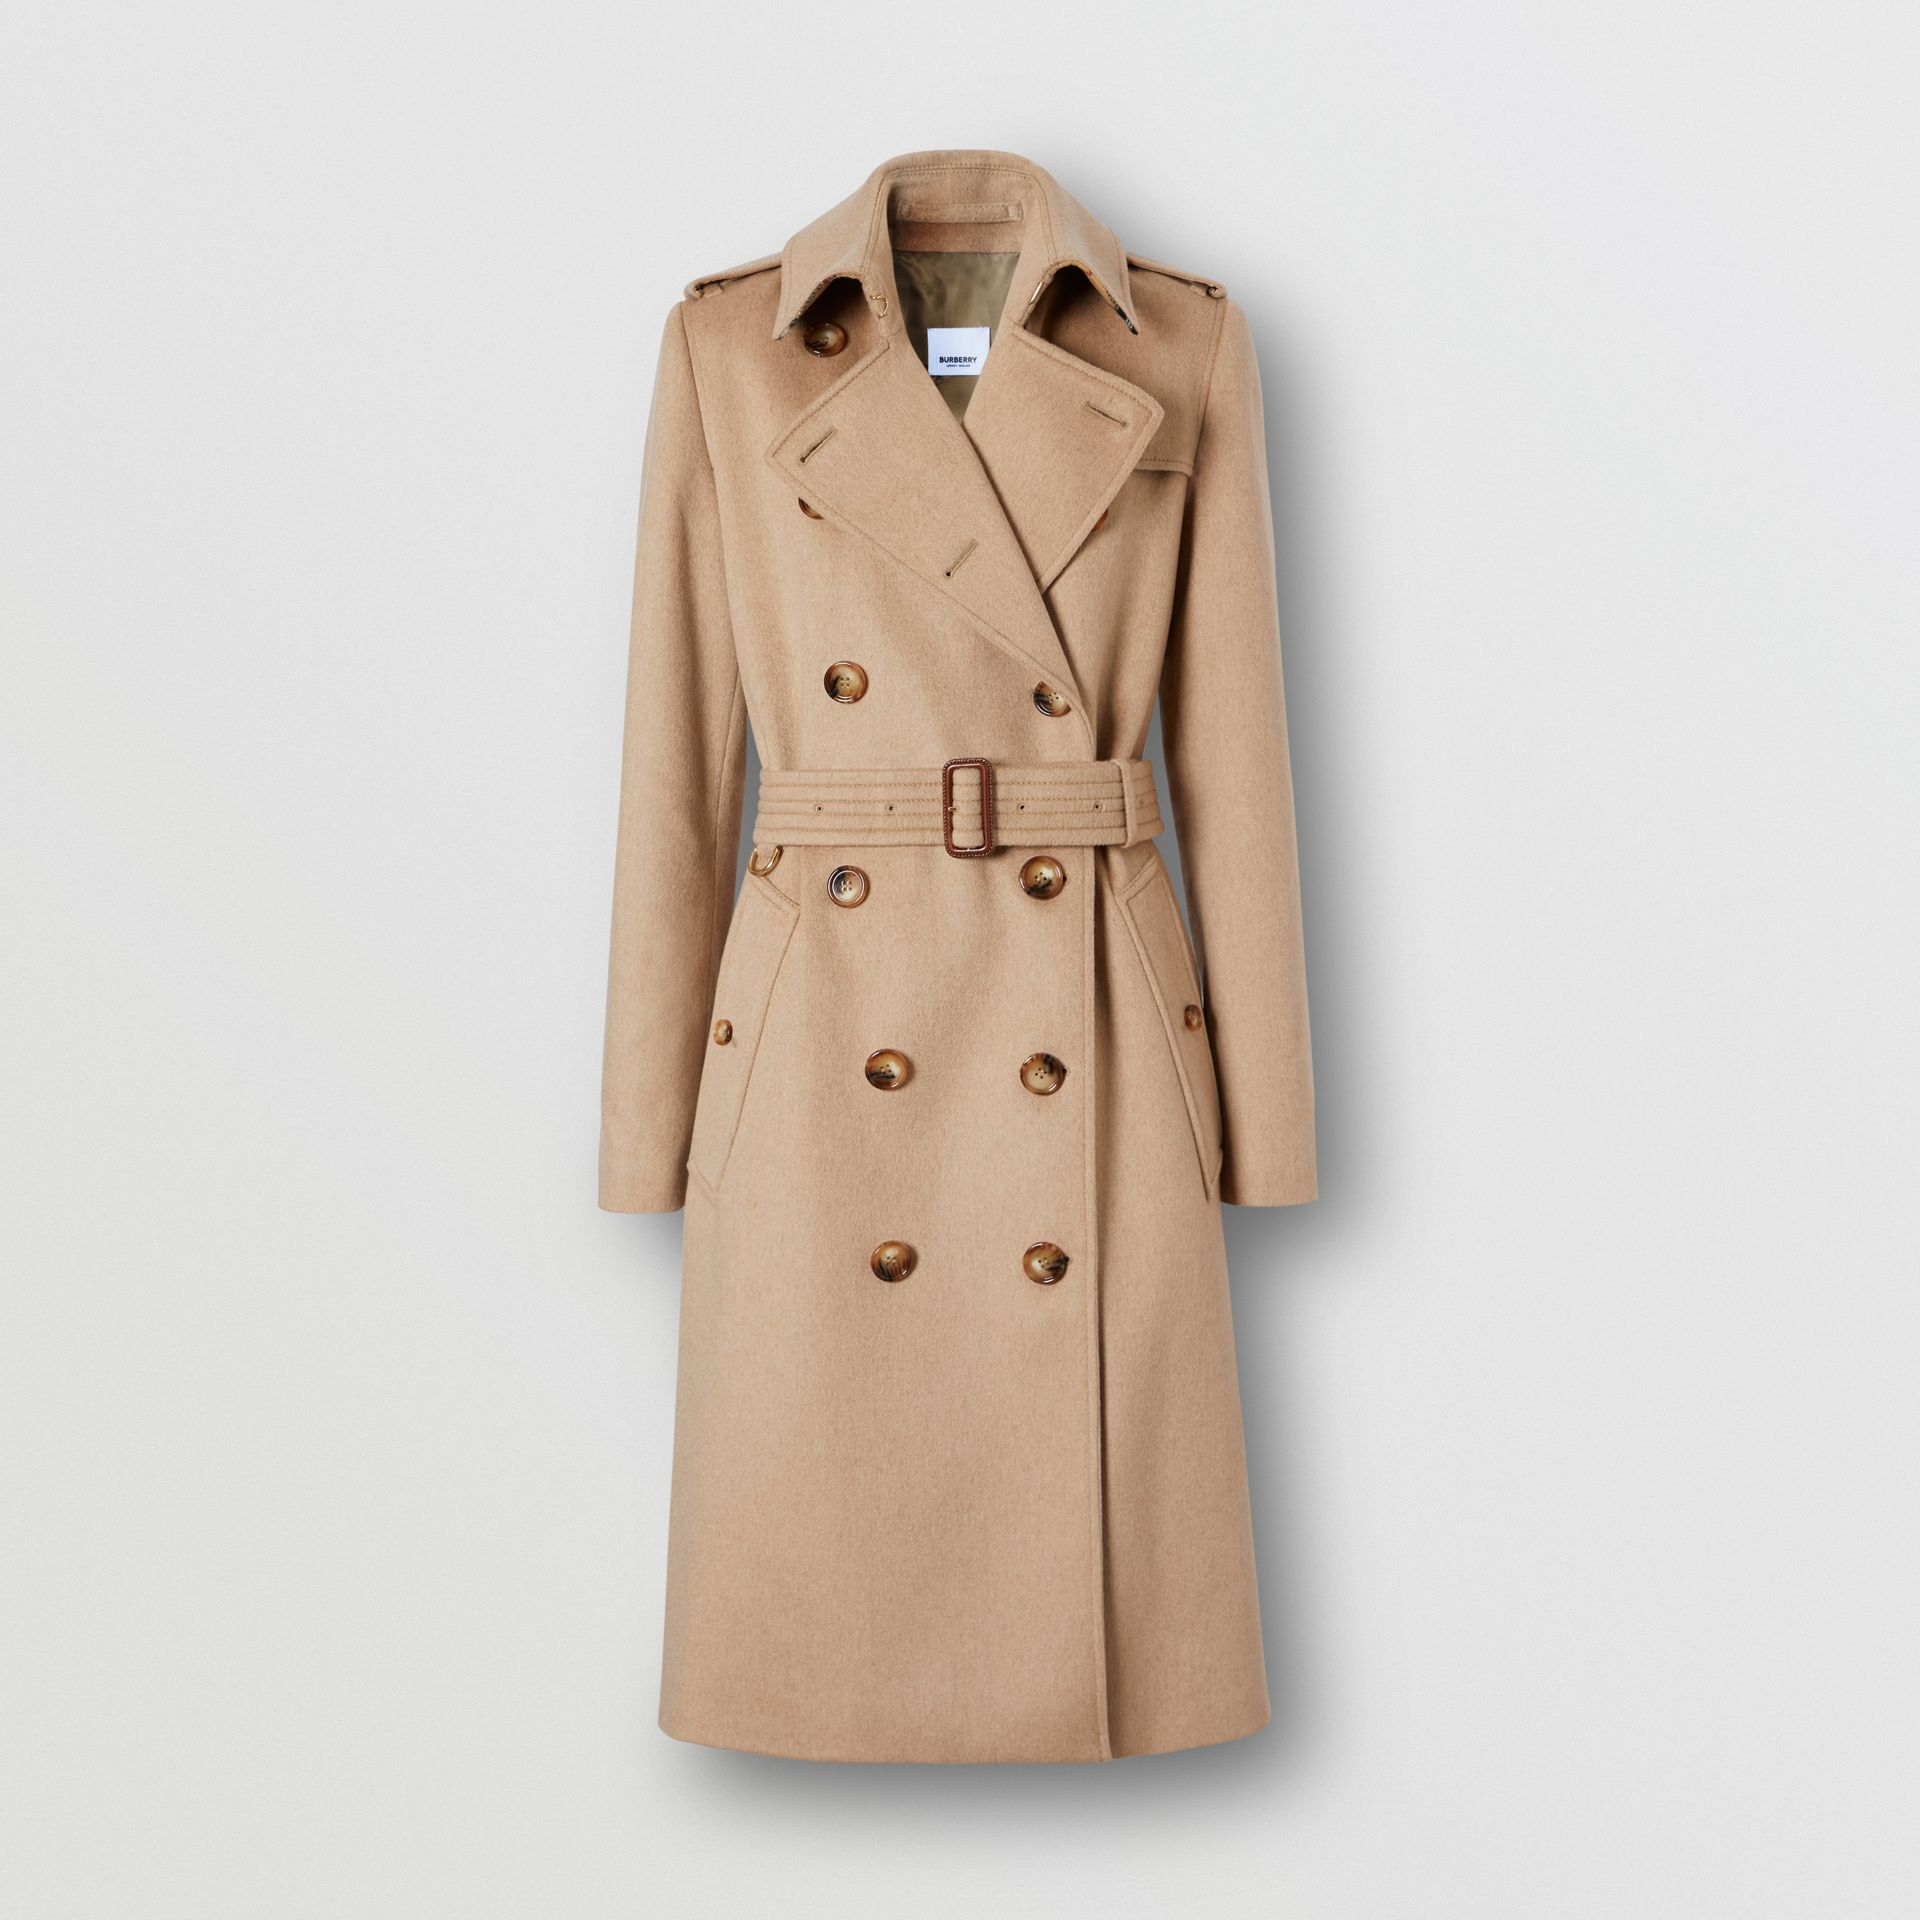 Cashmere Trench Coat in Camel - Women | Burberry Hong Kong S.A.R - gallery image 3